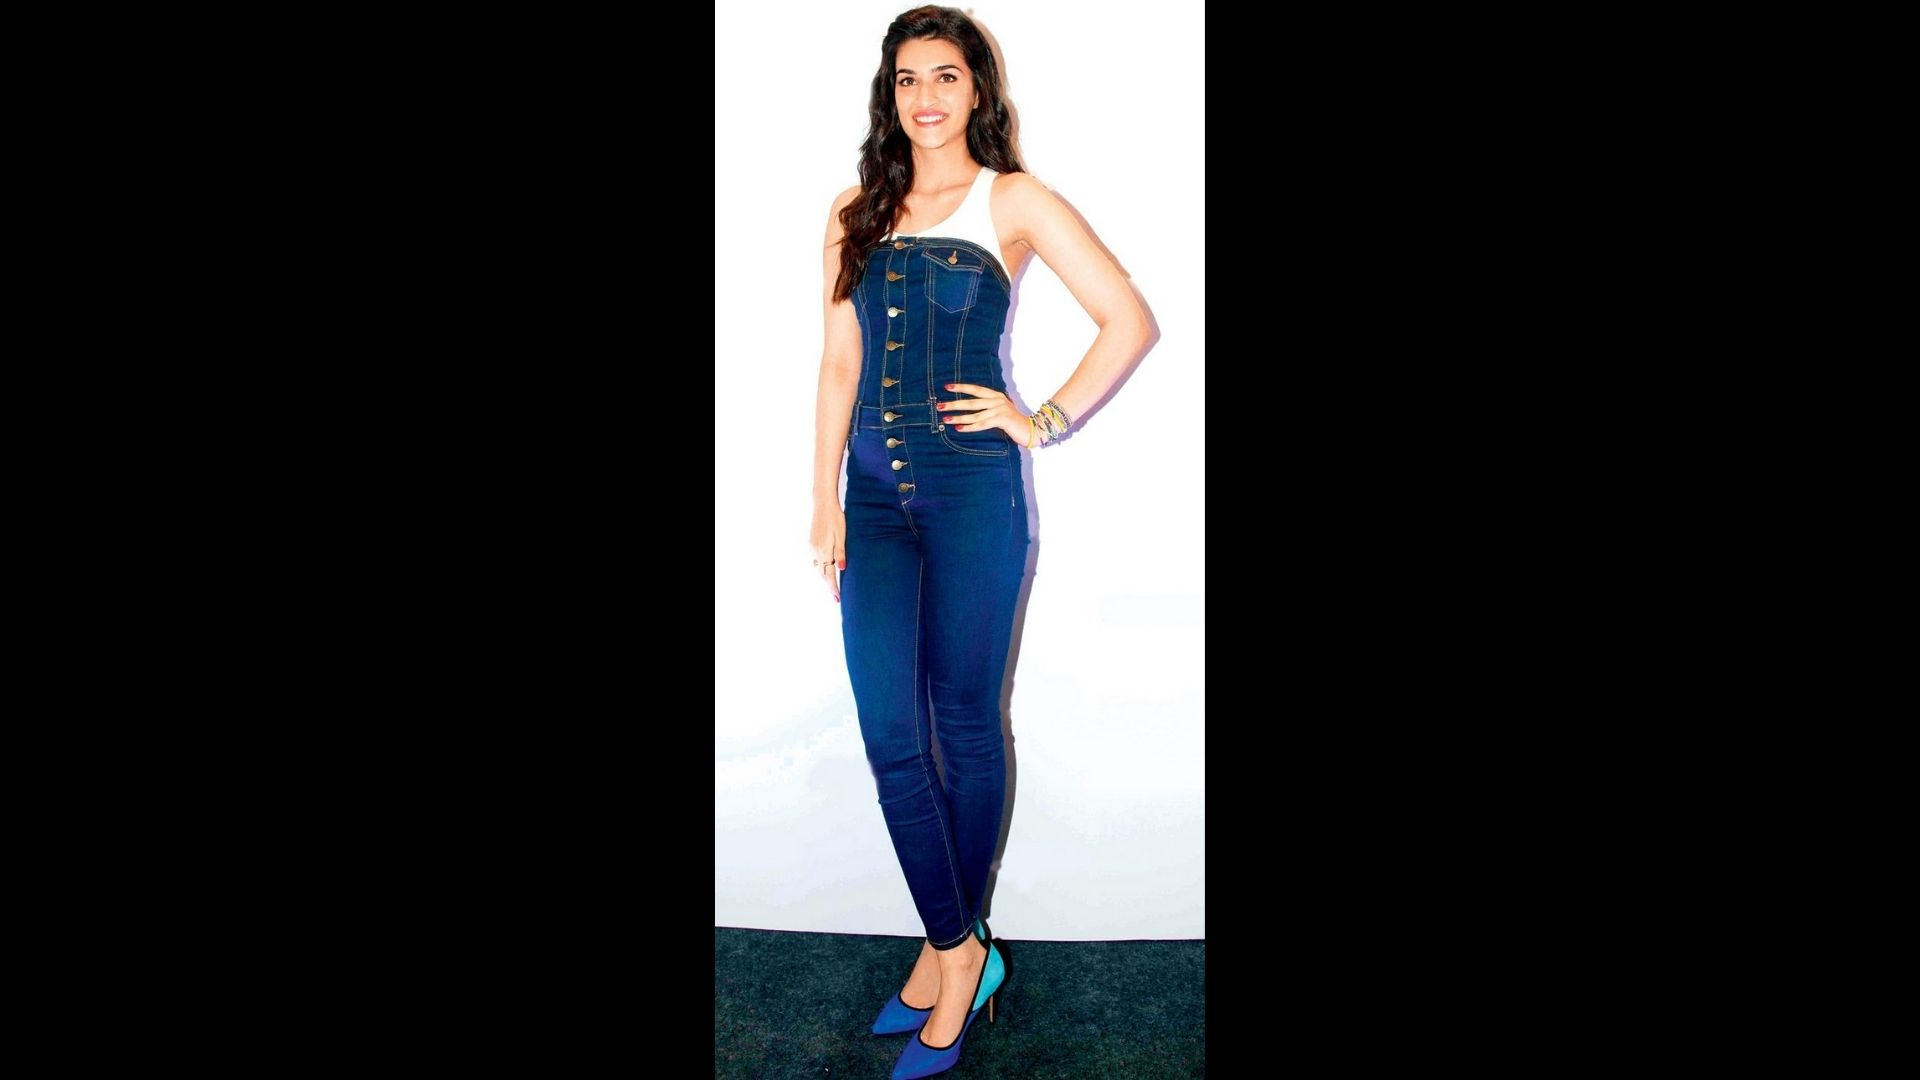 Kriti Sanon Looks Scintillating And Classic In Her Tube Denim Jumpsuit; Serves The Best Outfit For Lunch Date